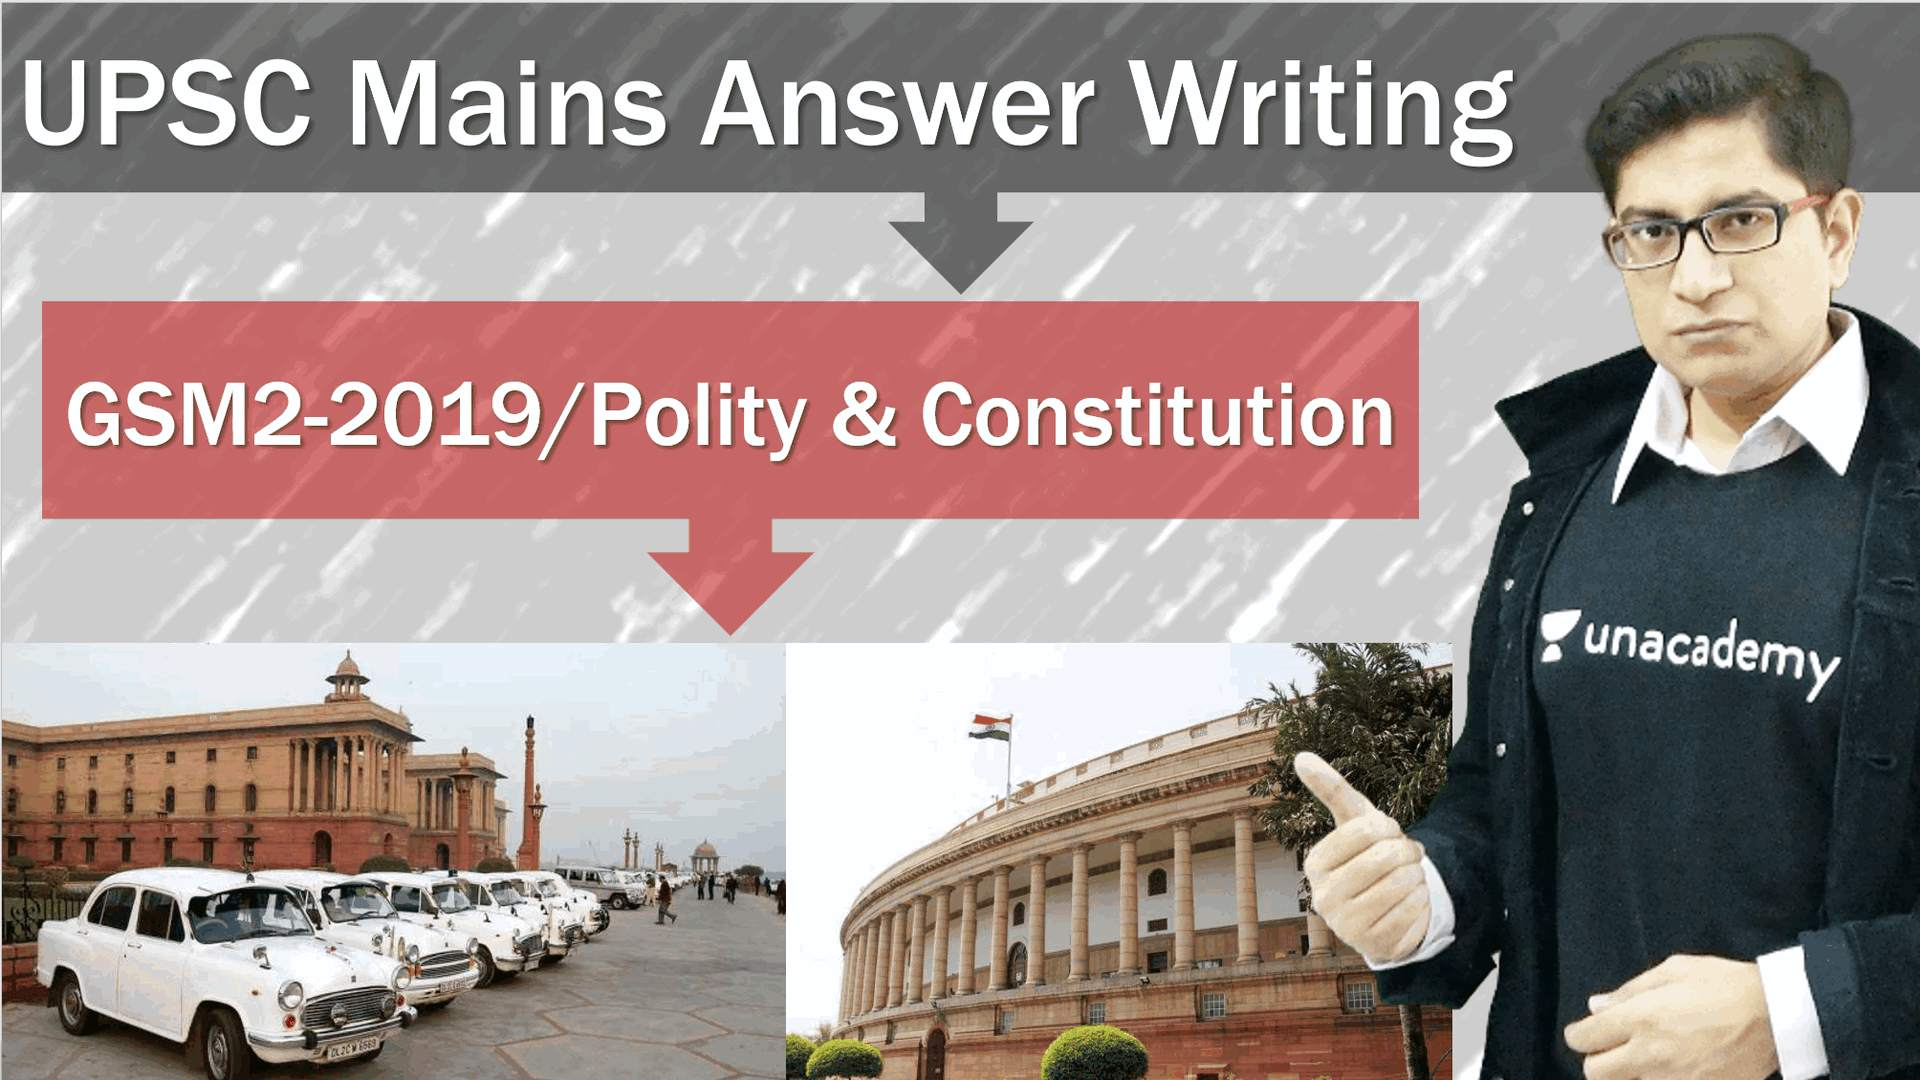 UPSC Mains 2019 Model Answers for GSM2 Polity